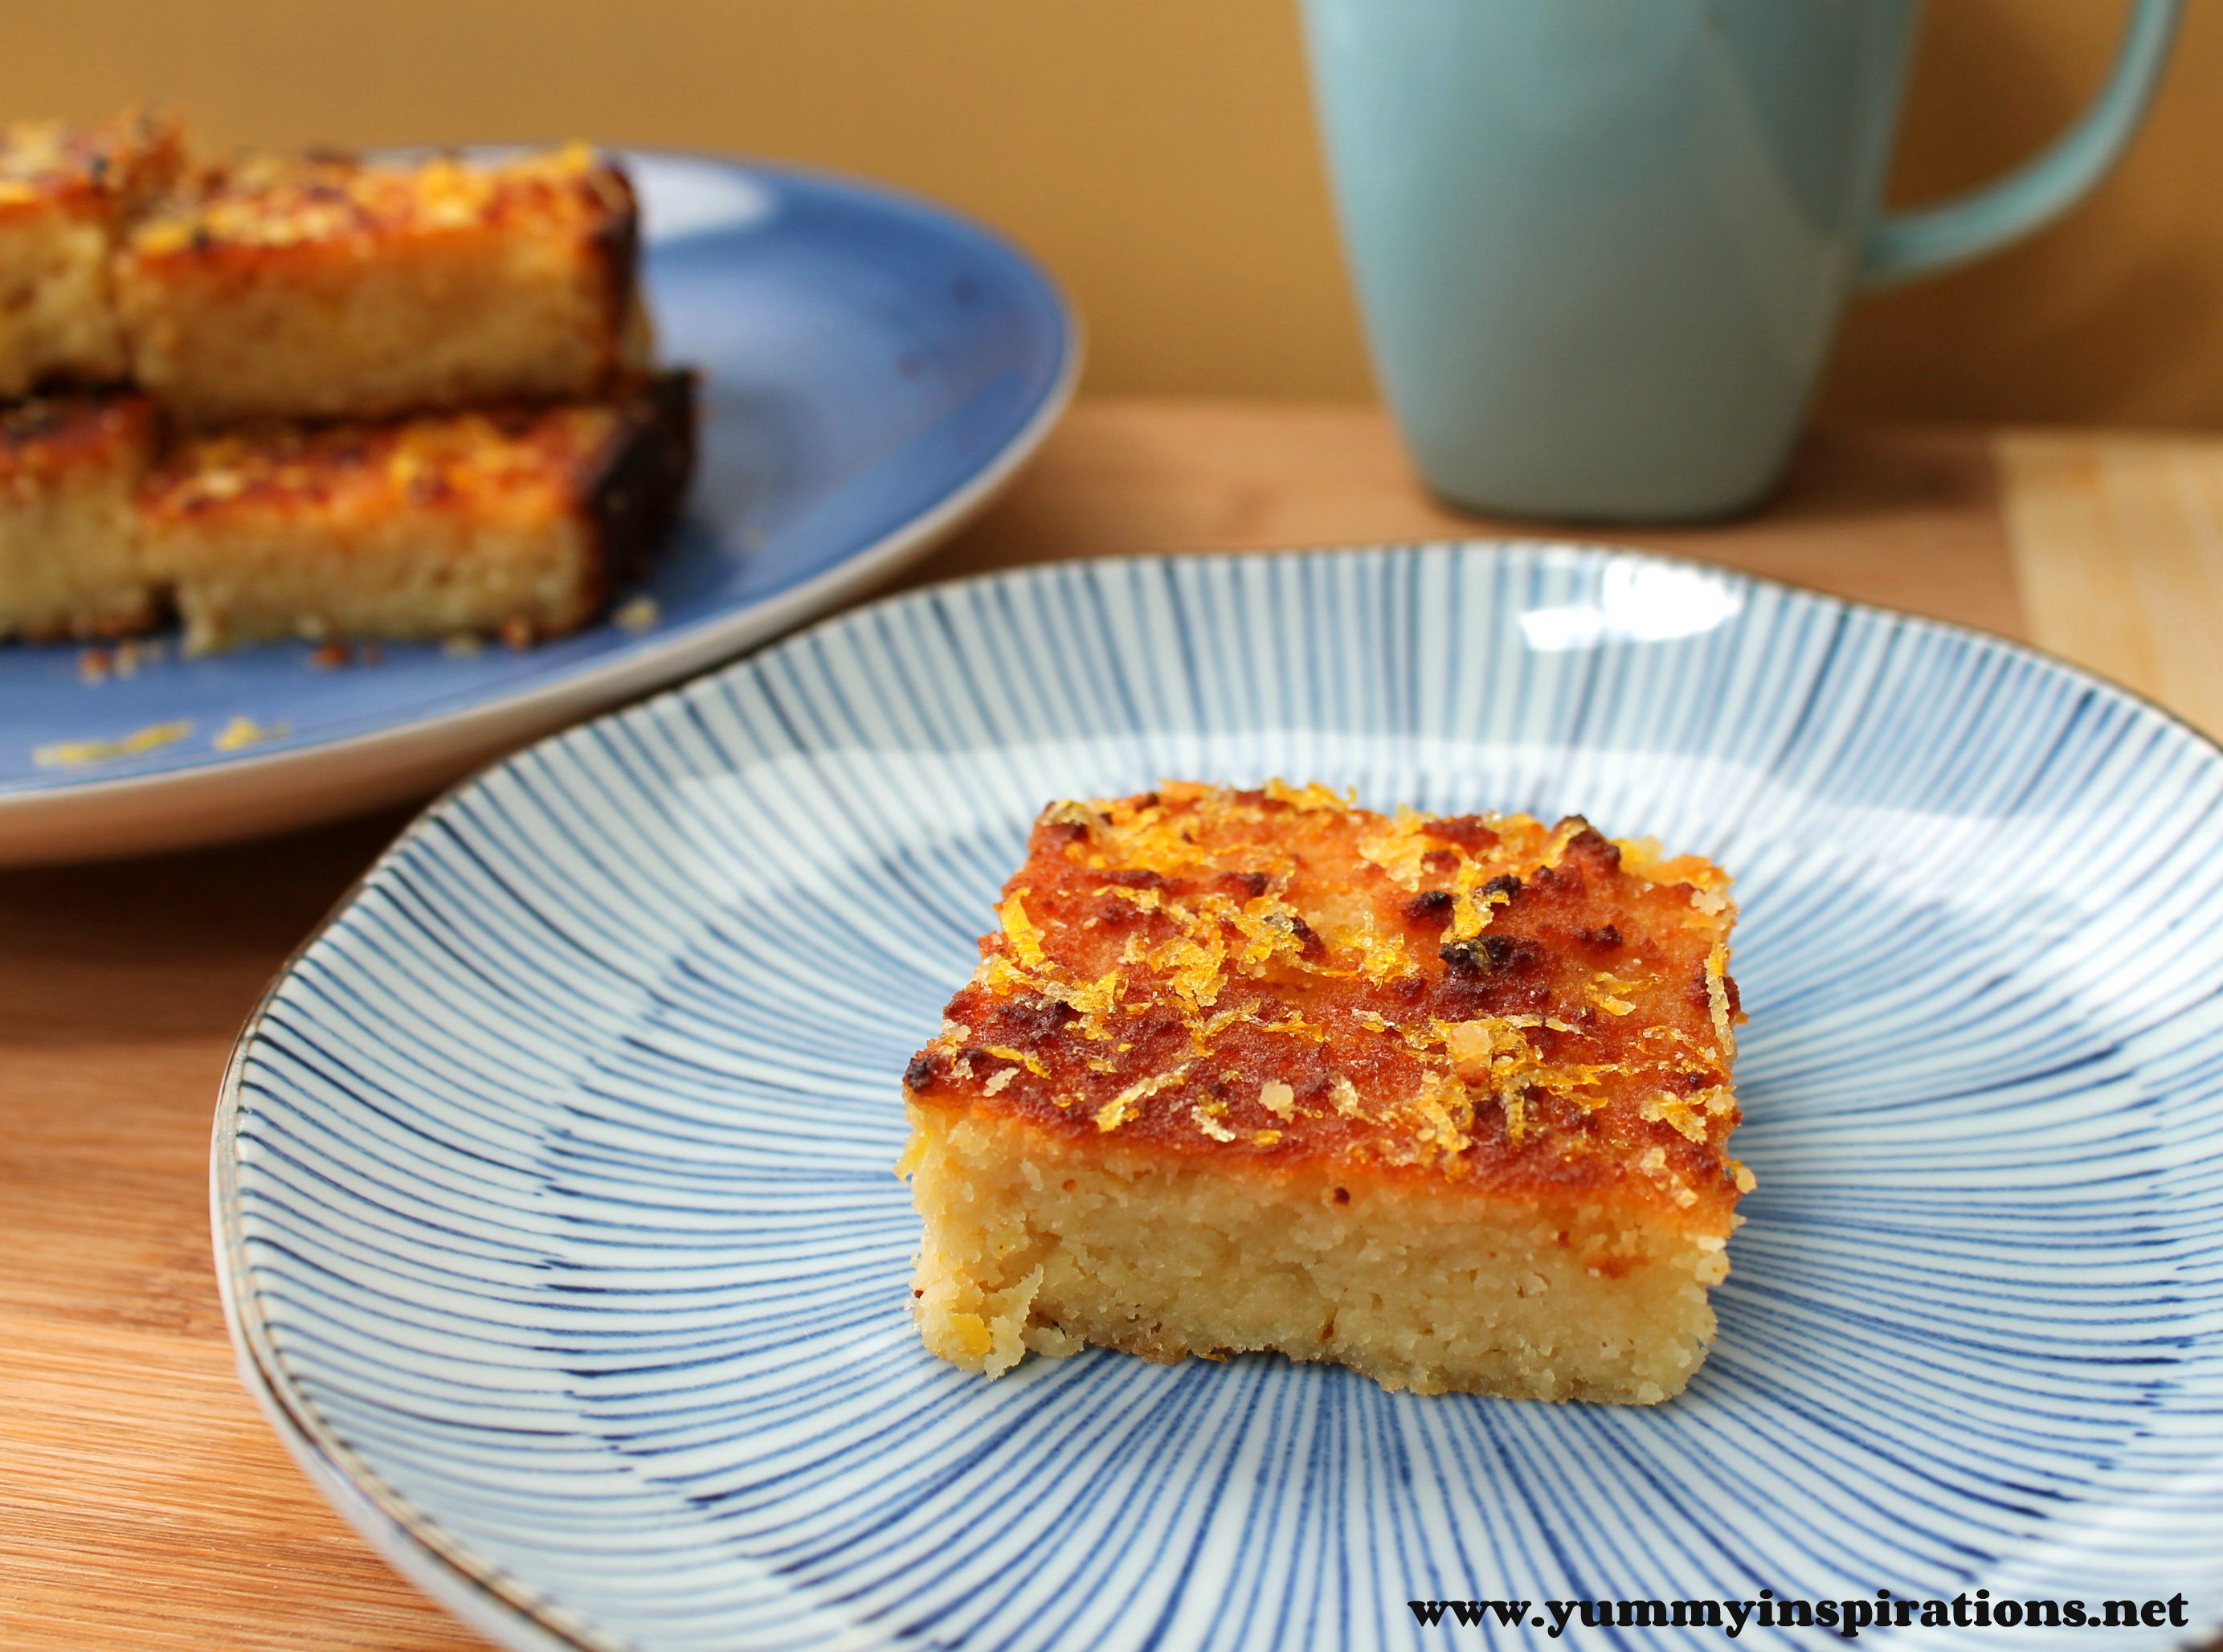 Recipes Using Lemon Drizzle Cake: Lemon Drizzle Cake (Grain Free